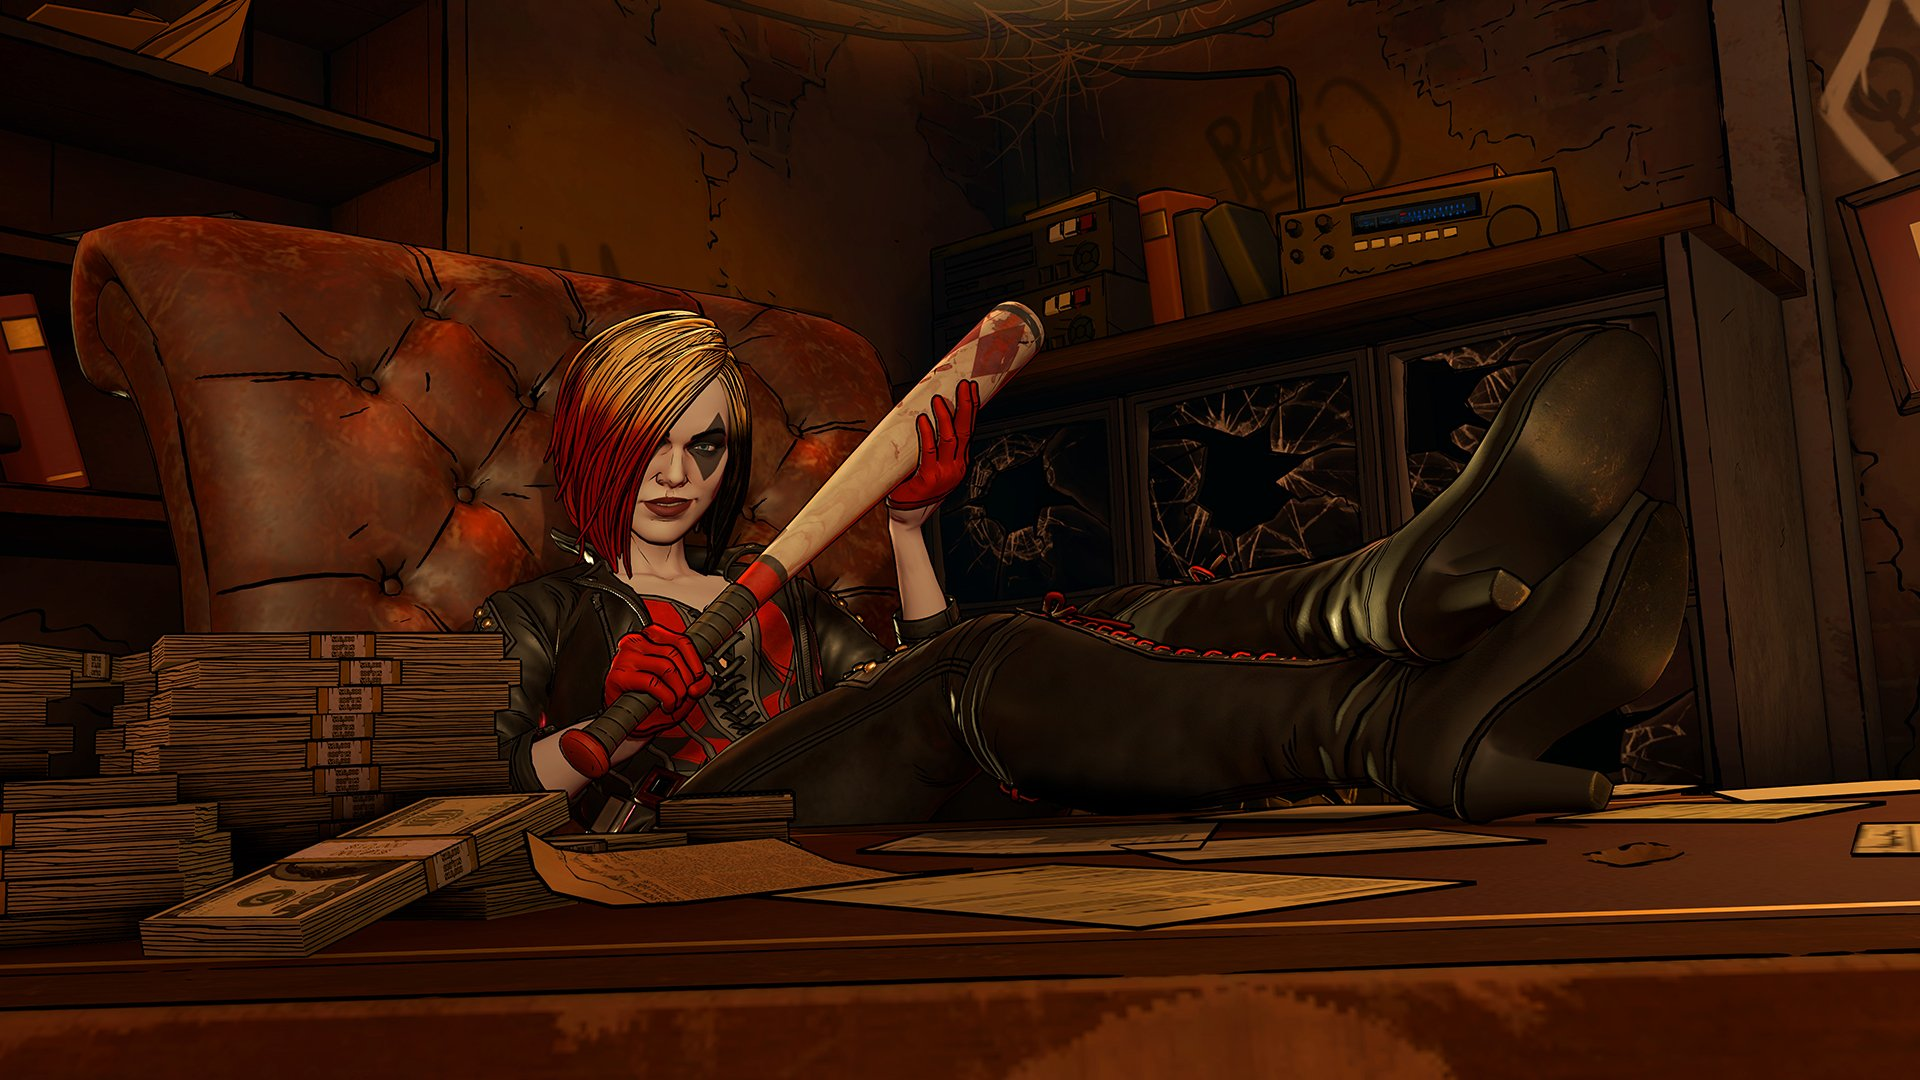 Harley Quinn Looks Like a Boss in Telltale's Batman: The Enemy Within